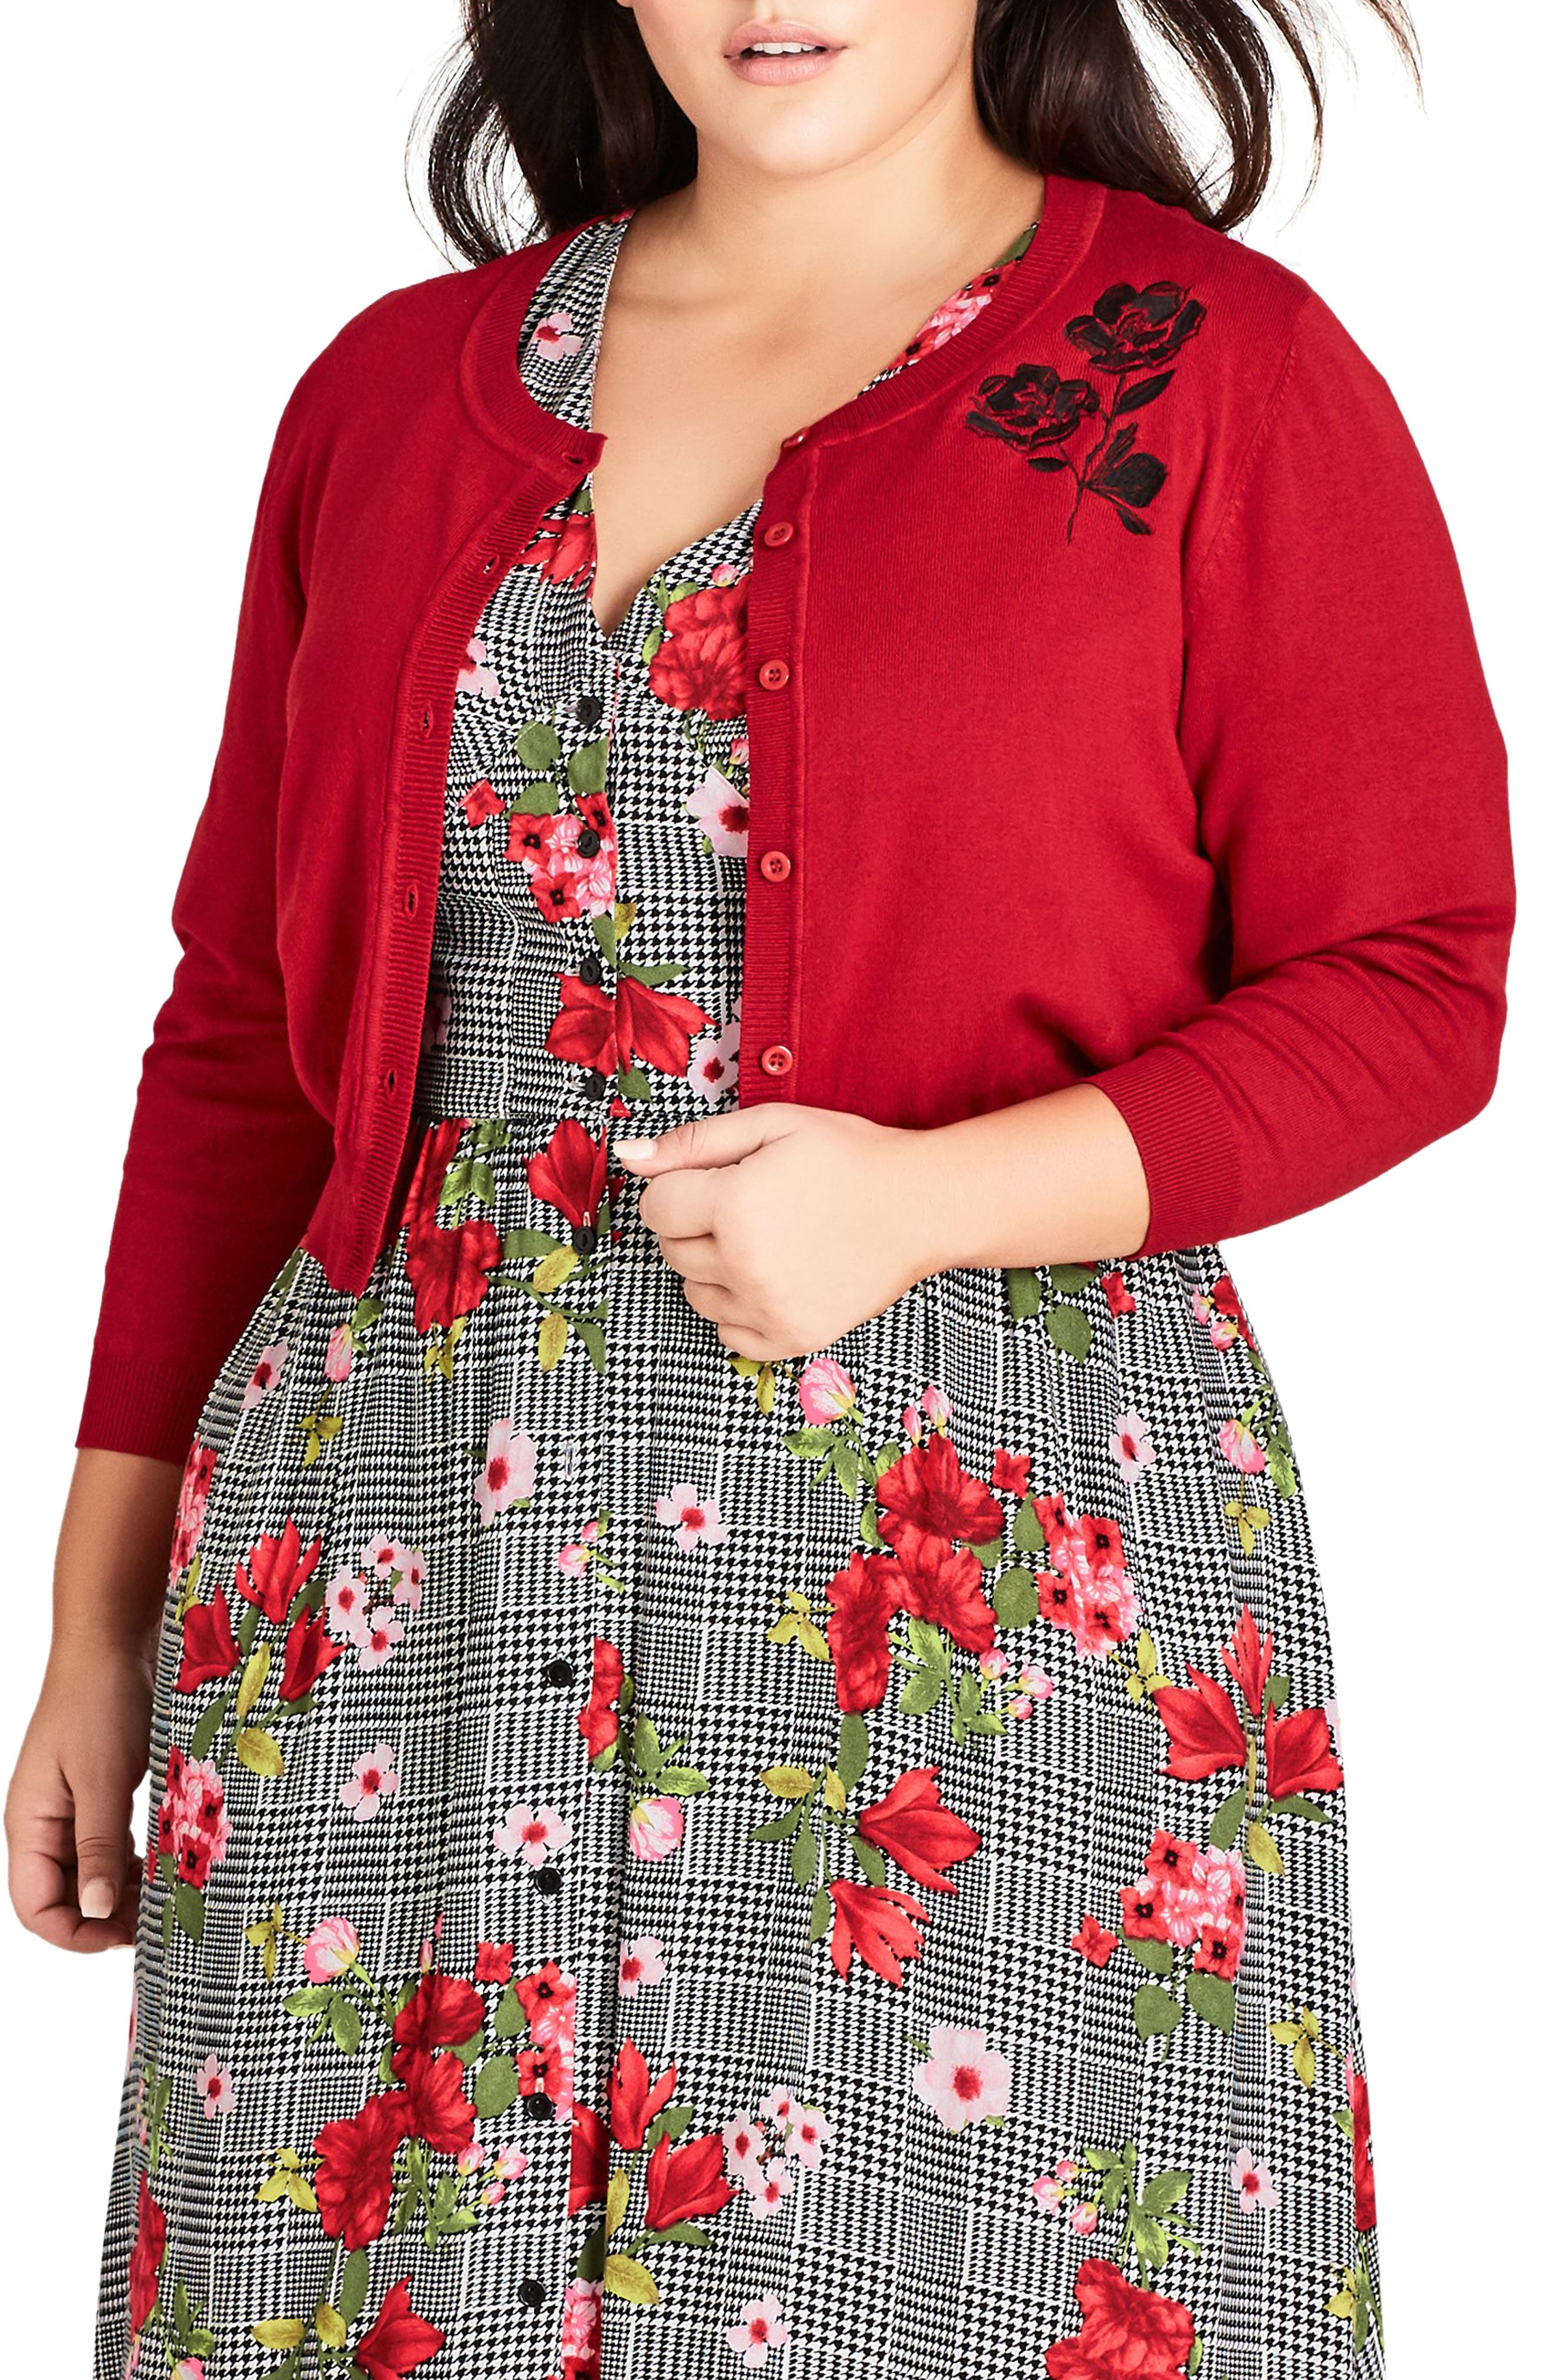 Authentic Natural 1950s Makeup History and Tutorial Plus Size Womens City Chic Cute Poppy Cardigan $35.40 AT vintagedancer.com